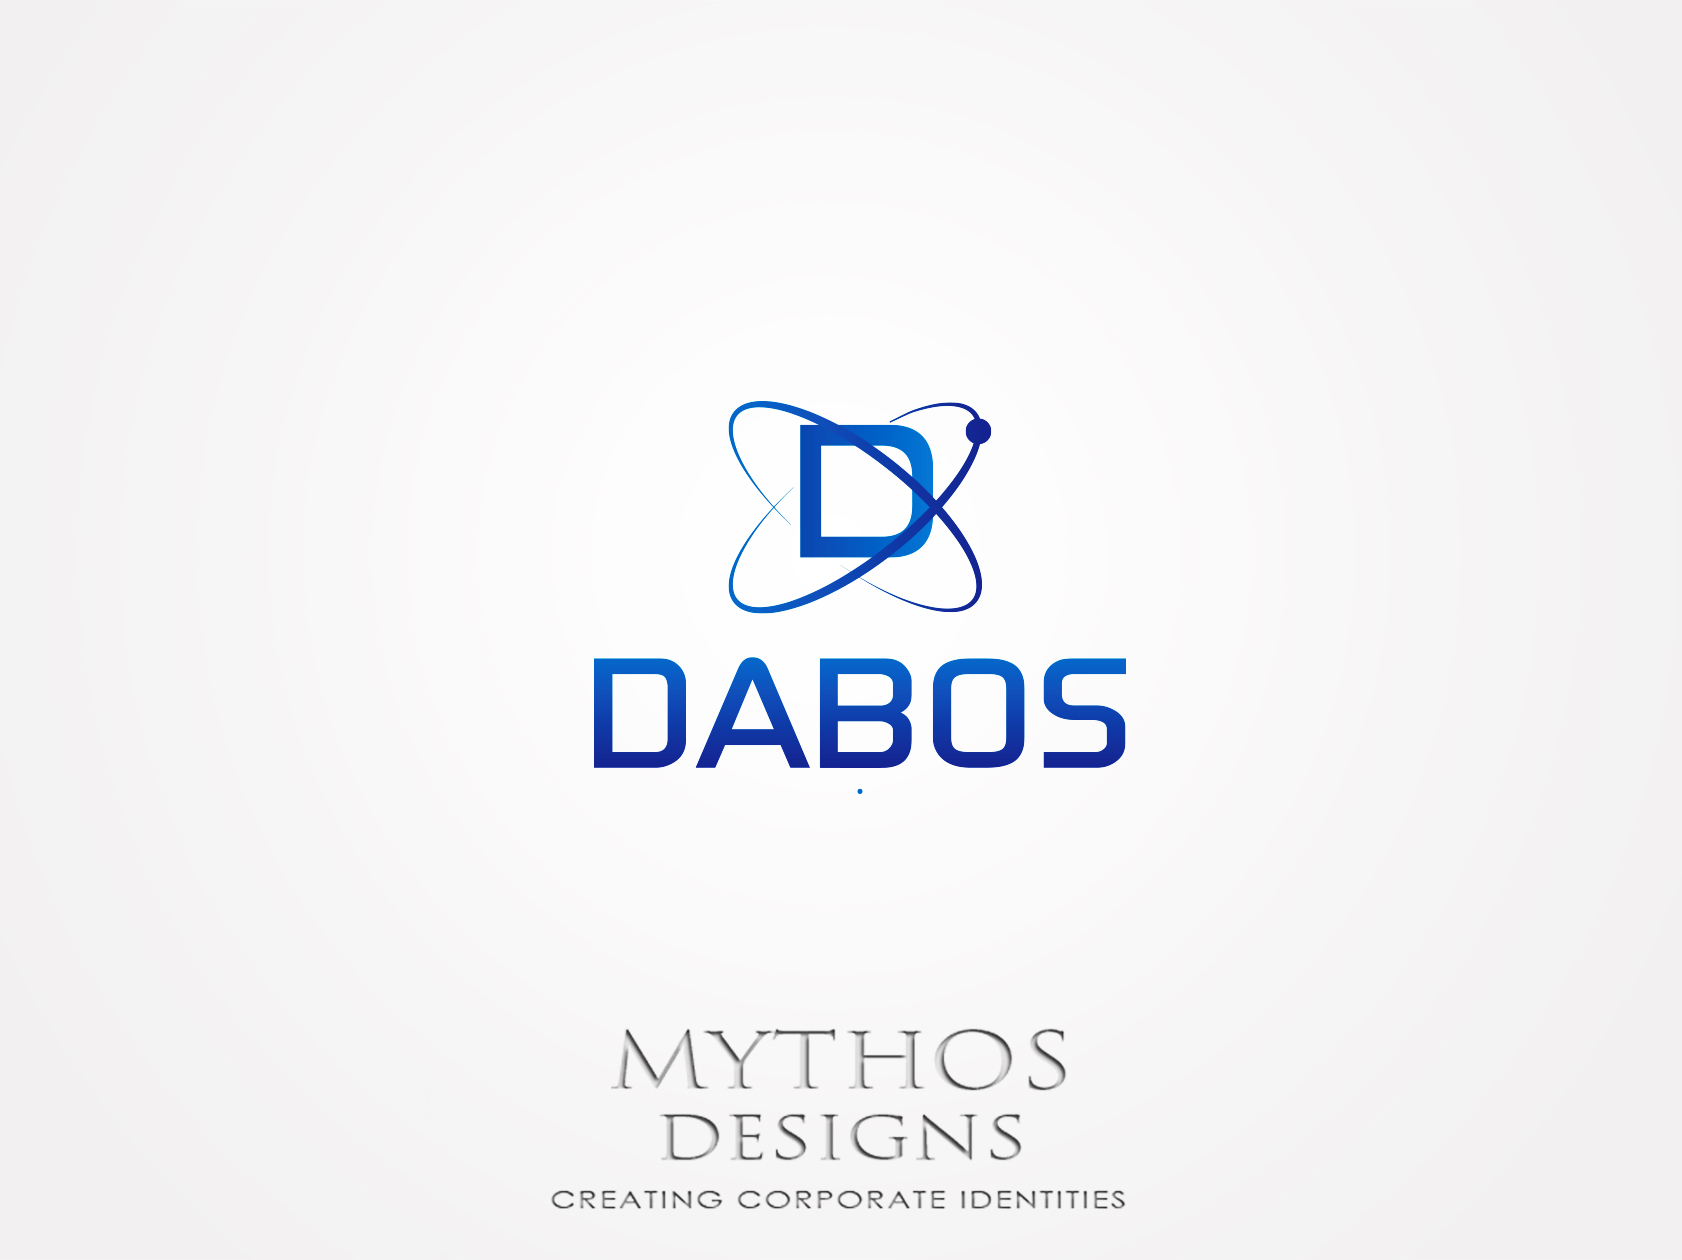 Logo Design by Mythos Designs - Entry No. 162 in the Logo Design Contest Imaginative Logo Design for DABOS, Limited Liability Company.